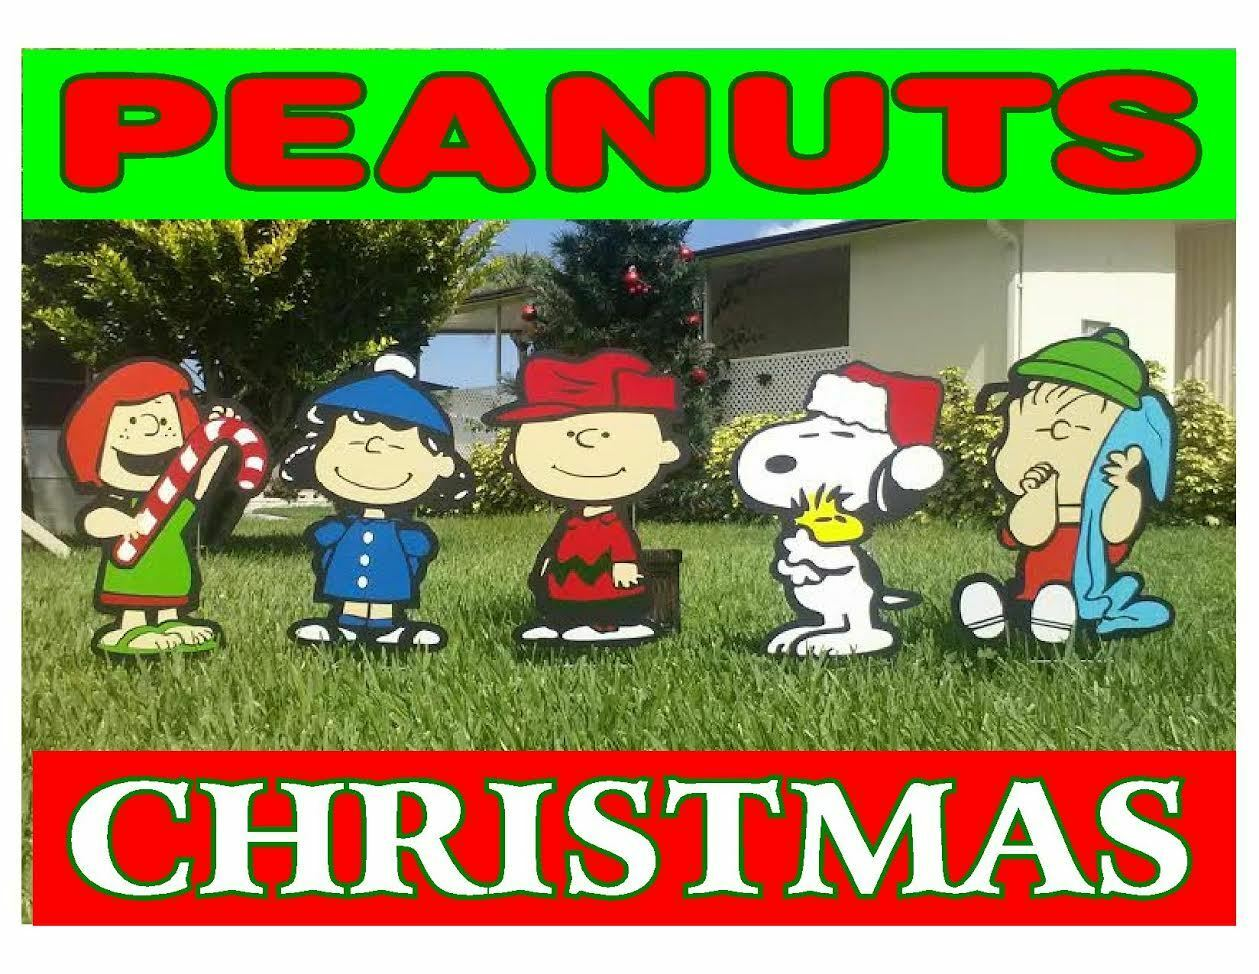 peanuts snoopy combo christmas yard lawn art decorations 1 of 12only 2 available